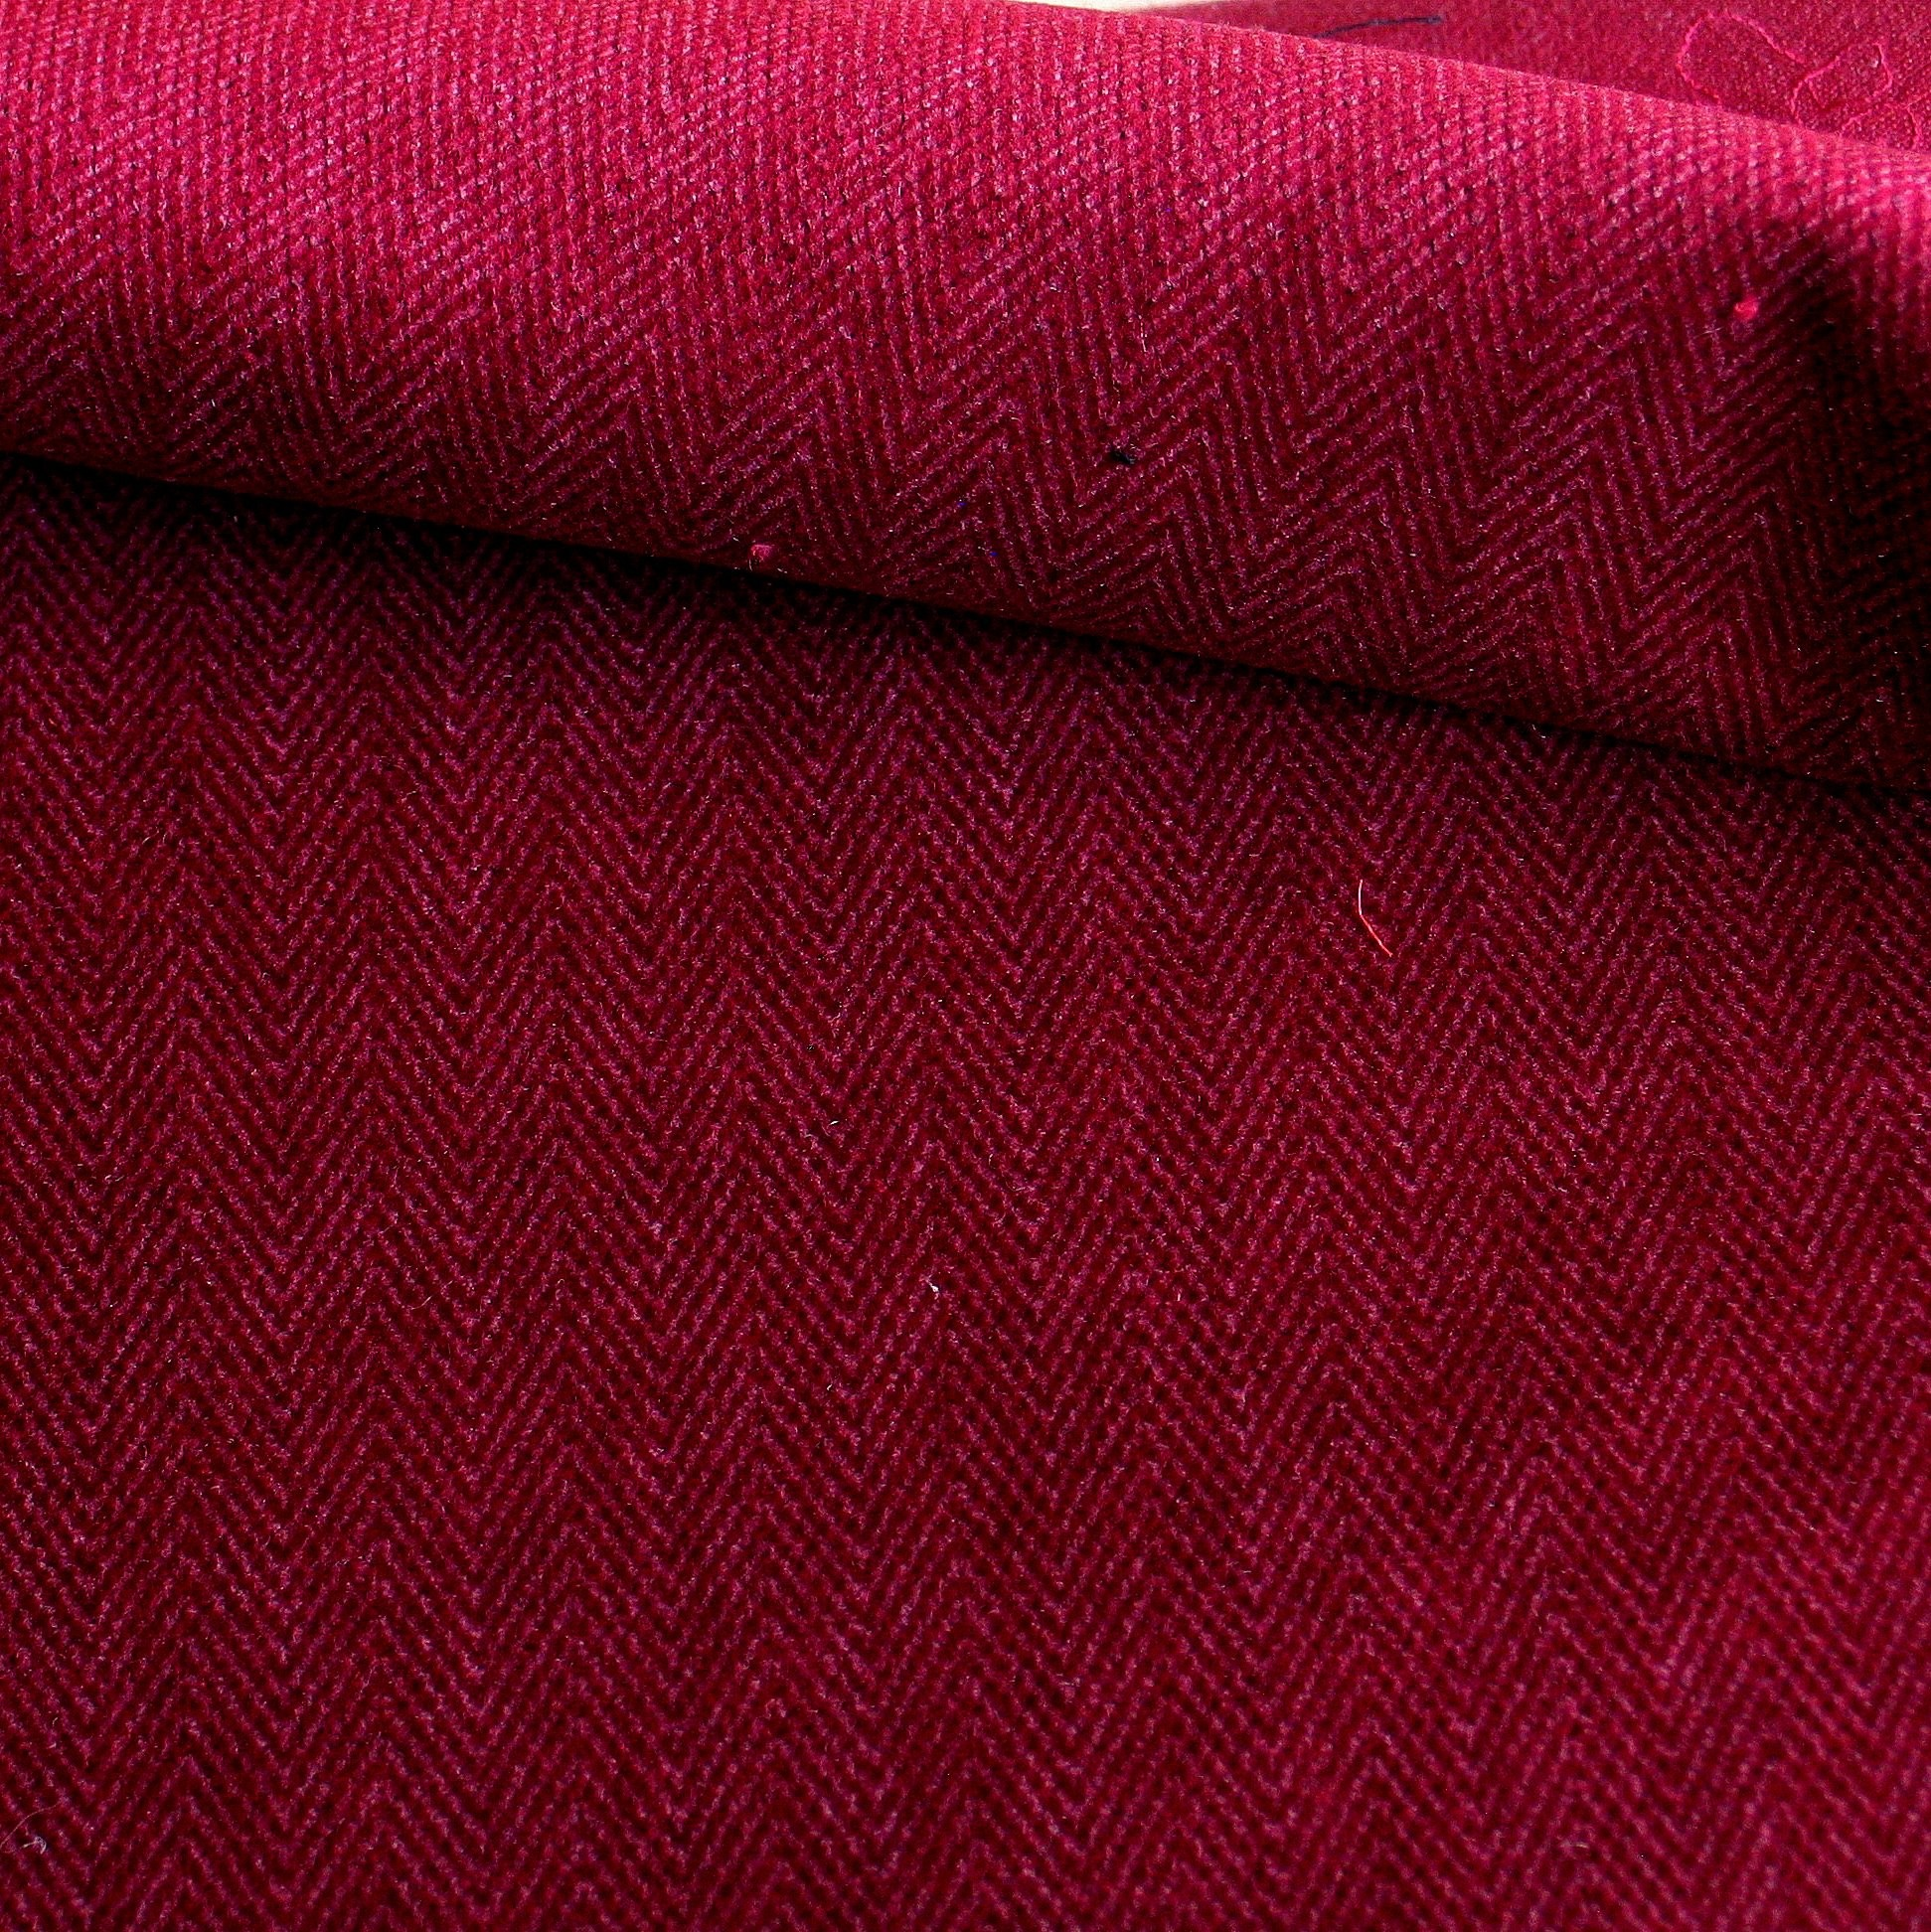 velvet, texture, background, velvet texture